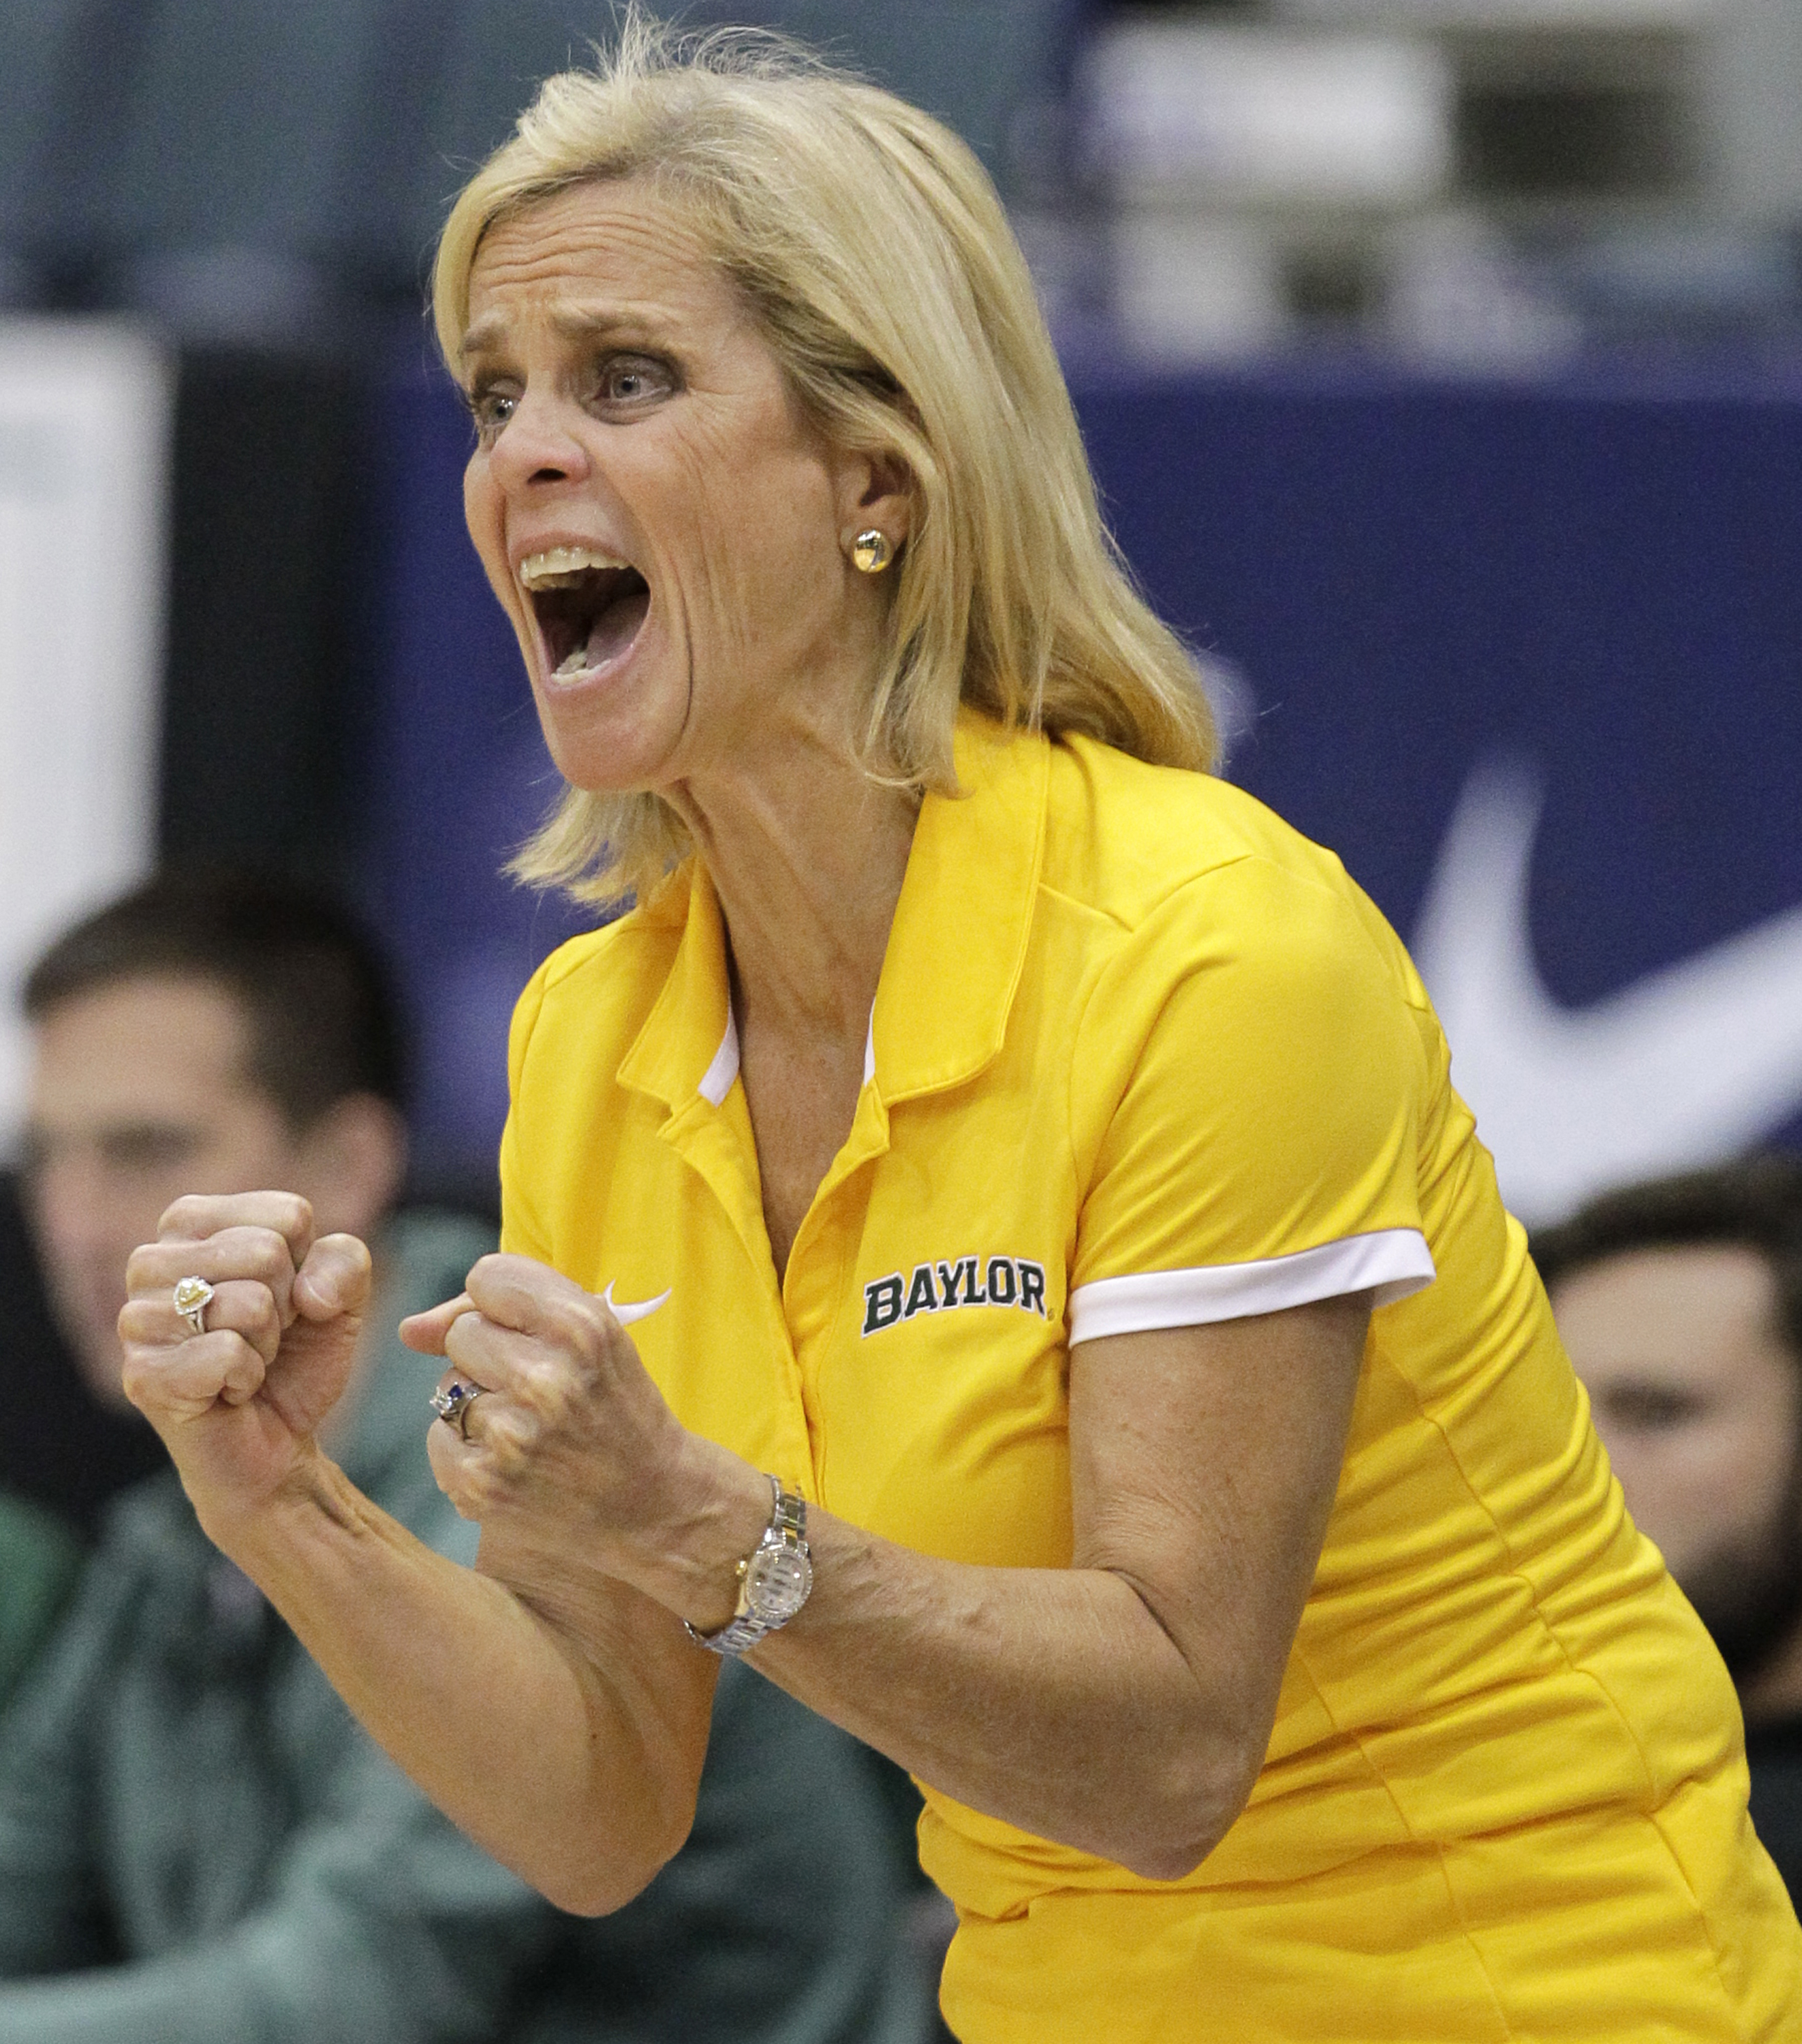 Baylor head coach Kim Mulkey reacts to a play during the second half of an NCAA college basketball game against Ohio State at the Gulf Coast Showcase basketball tournament Sunday, Nov. 27, 2016, in Estero, Fla. (AP Photo/Luis M. Alvarez)